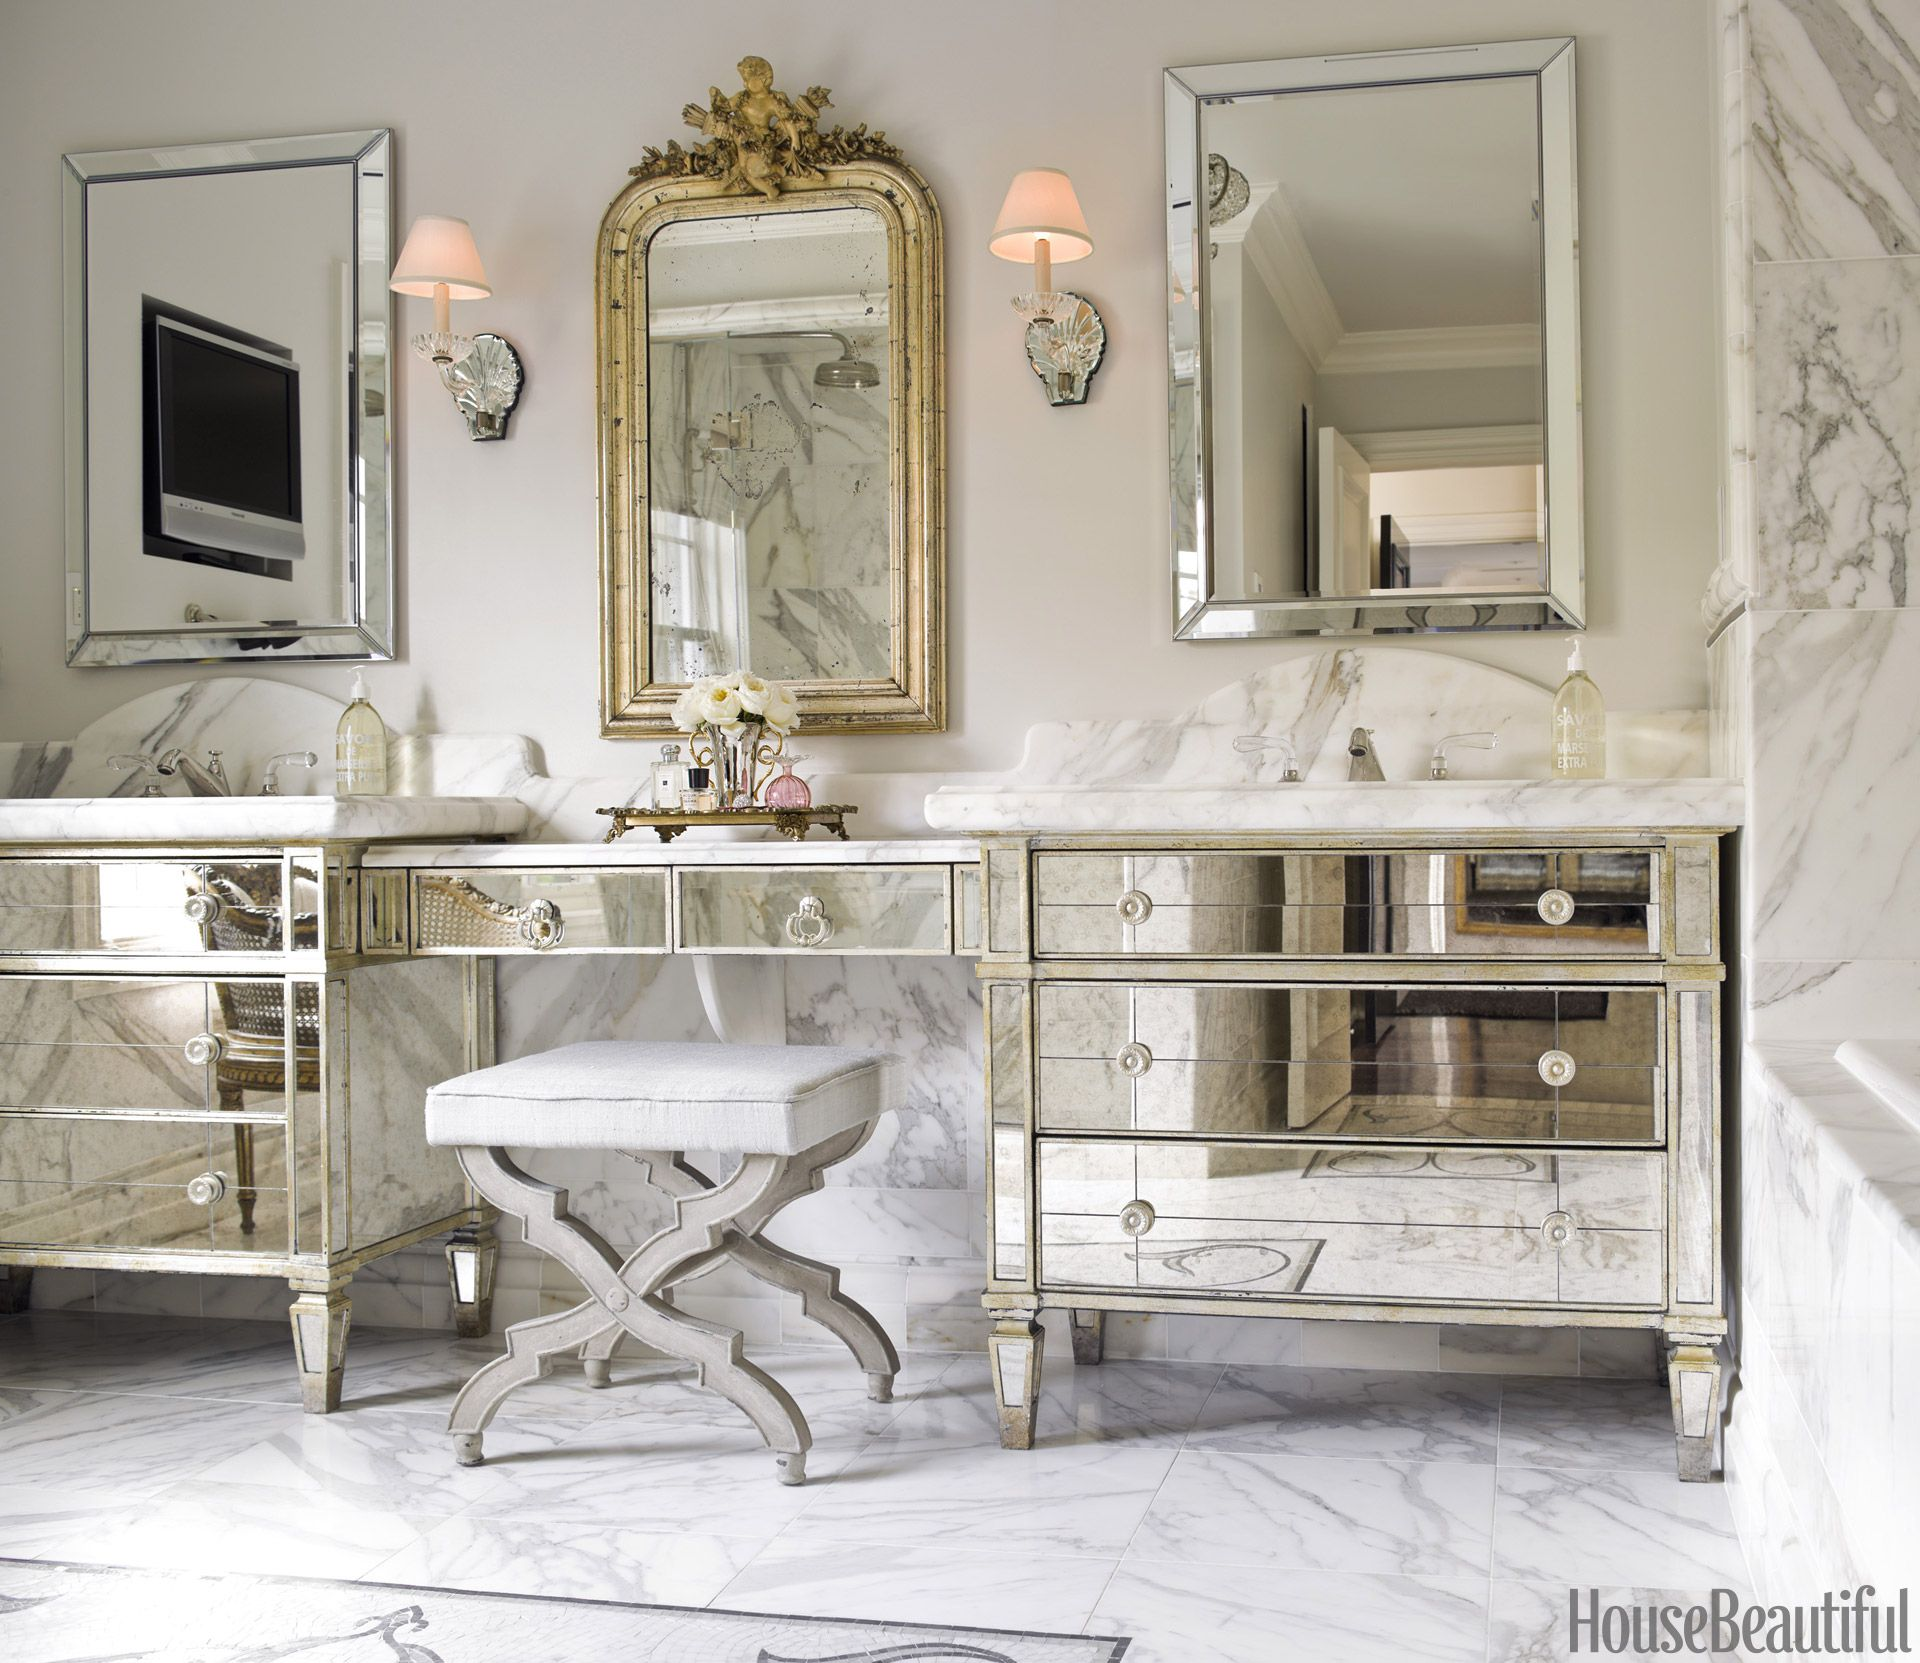 Mirrored Vanity House Beautiful Pinterest Favorite Pins March 21 2014